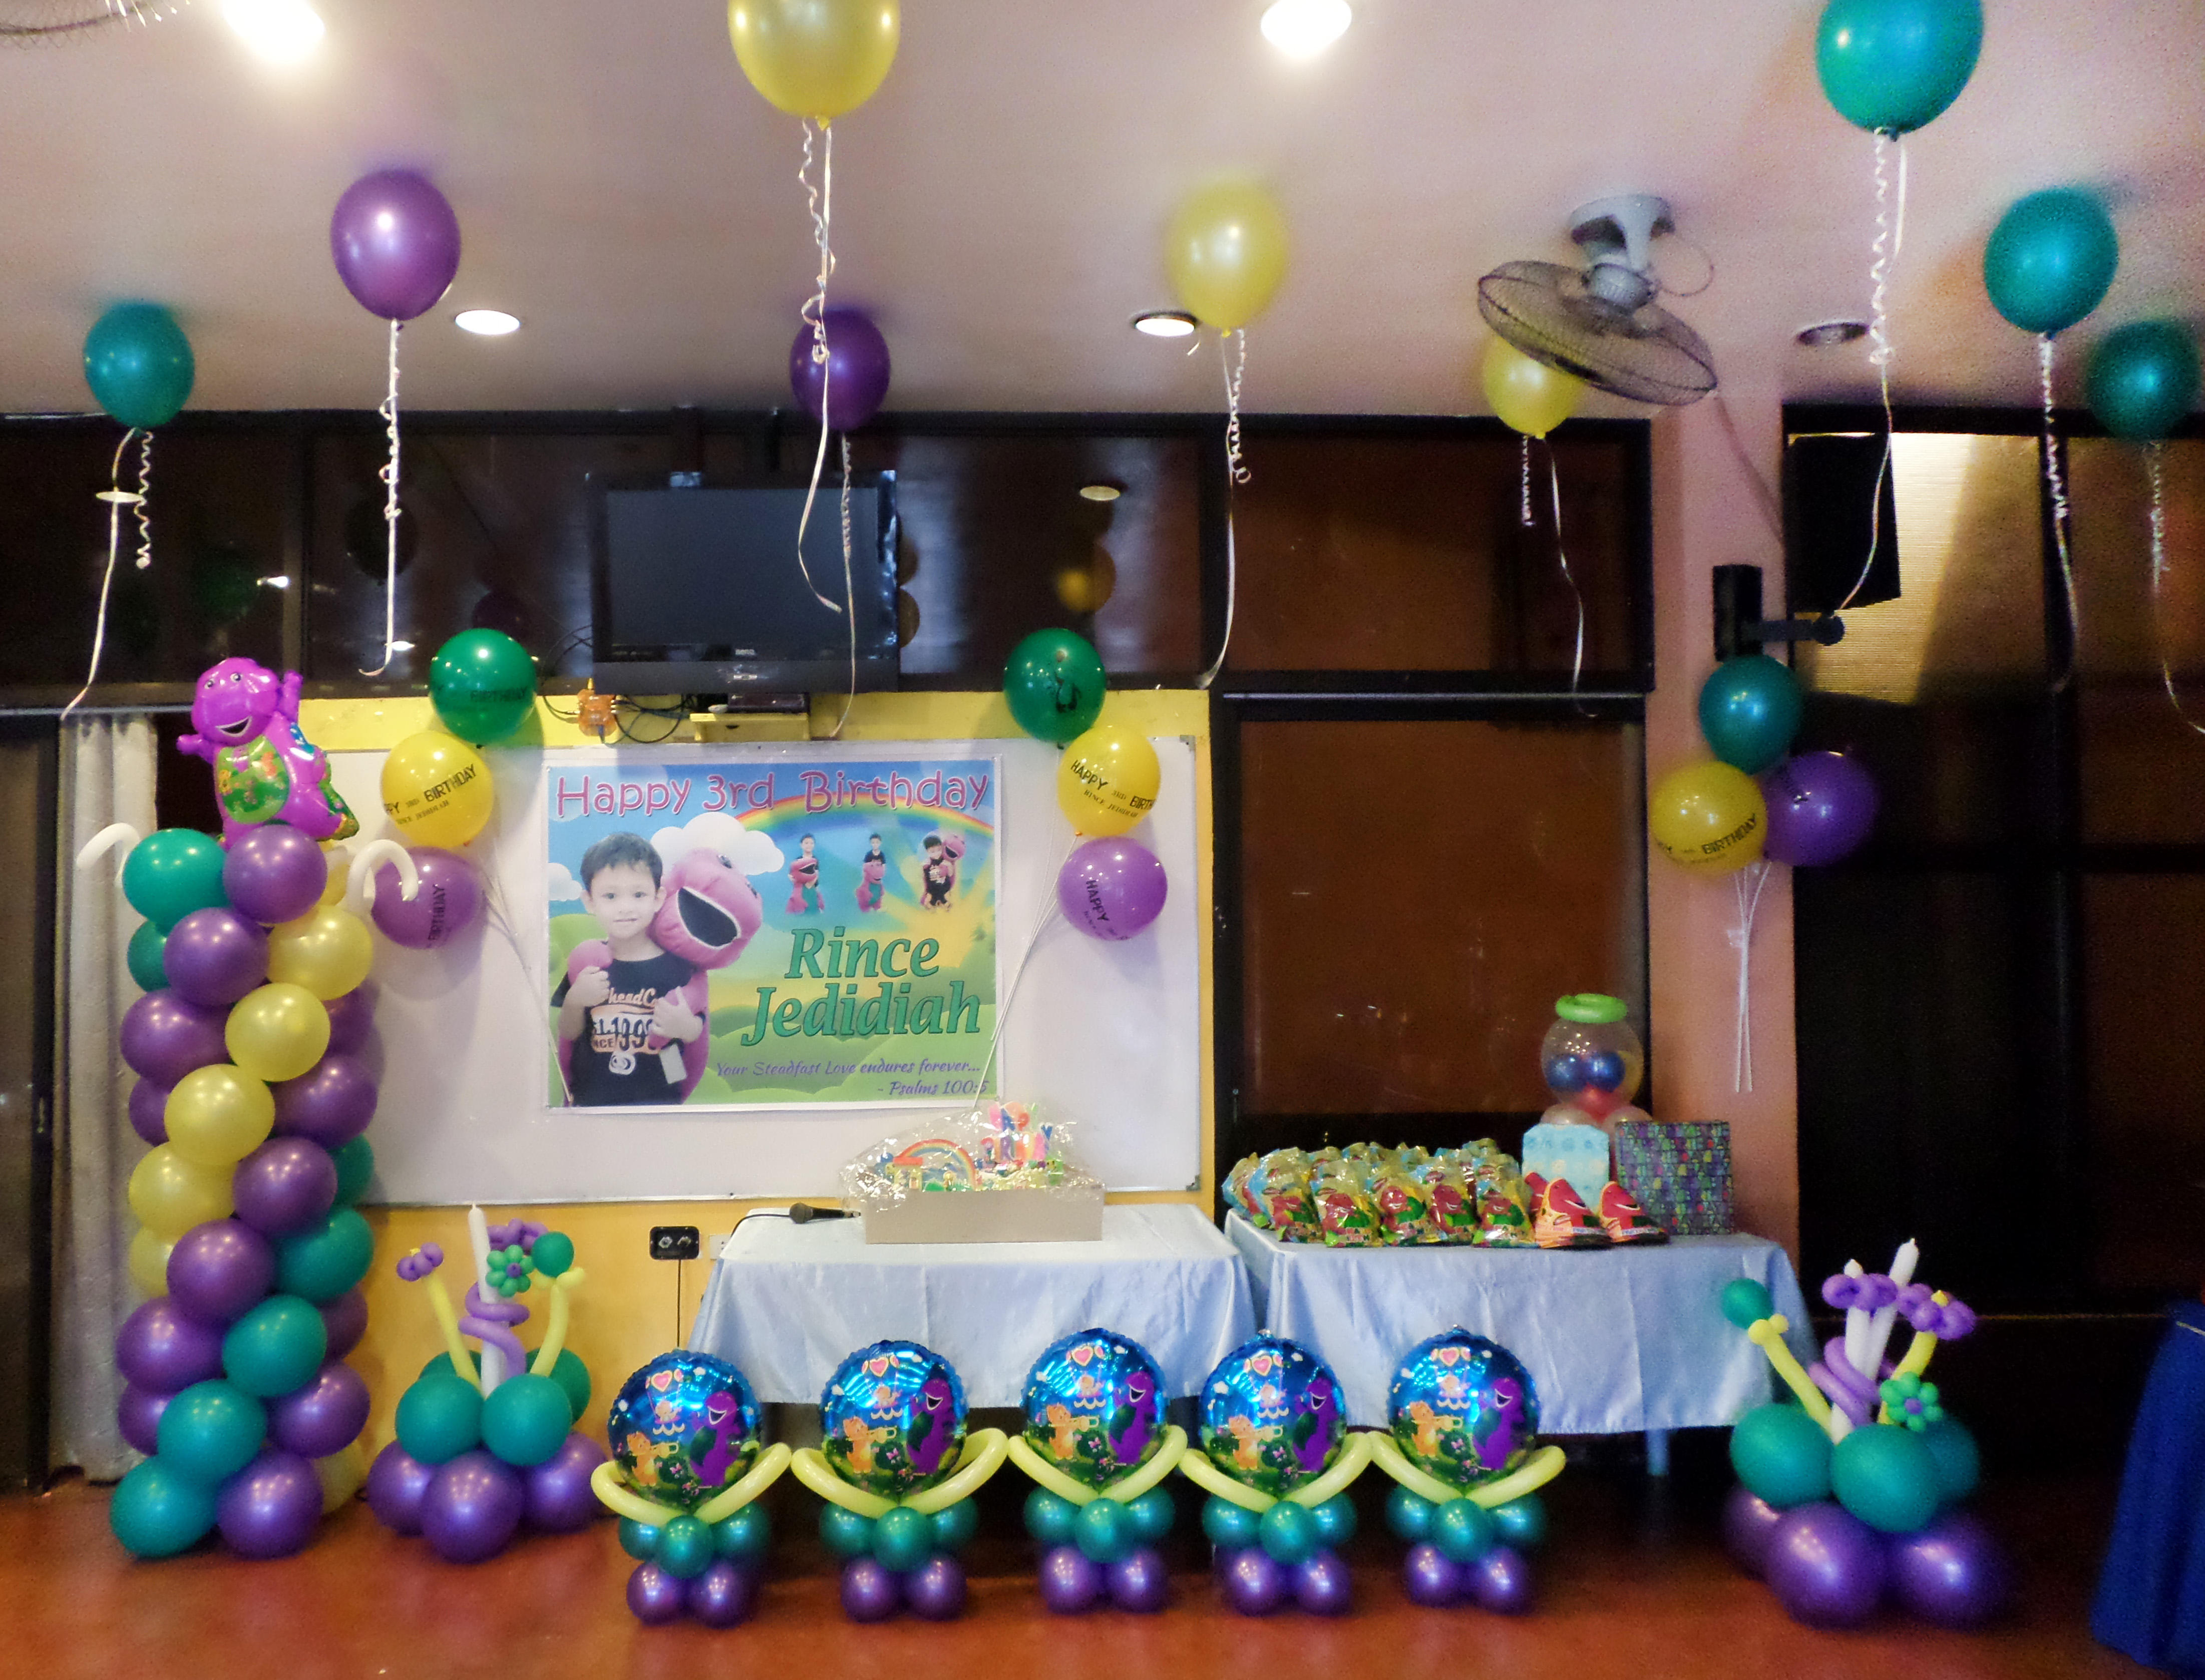 themed birthday party supplies ; Barney-Theme-Balloon-Decors-Party-Supplies-at-AAs-Barbeque-Guadalupe